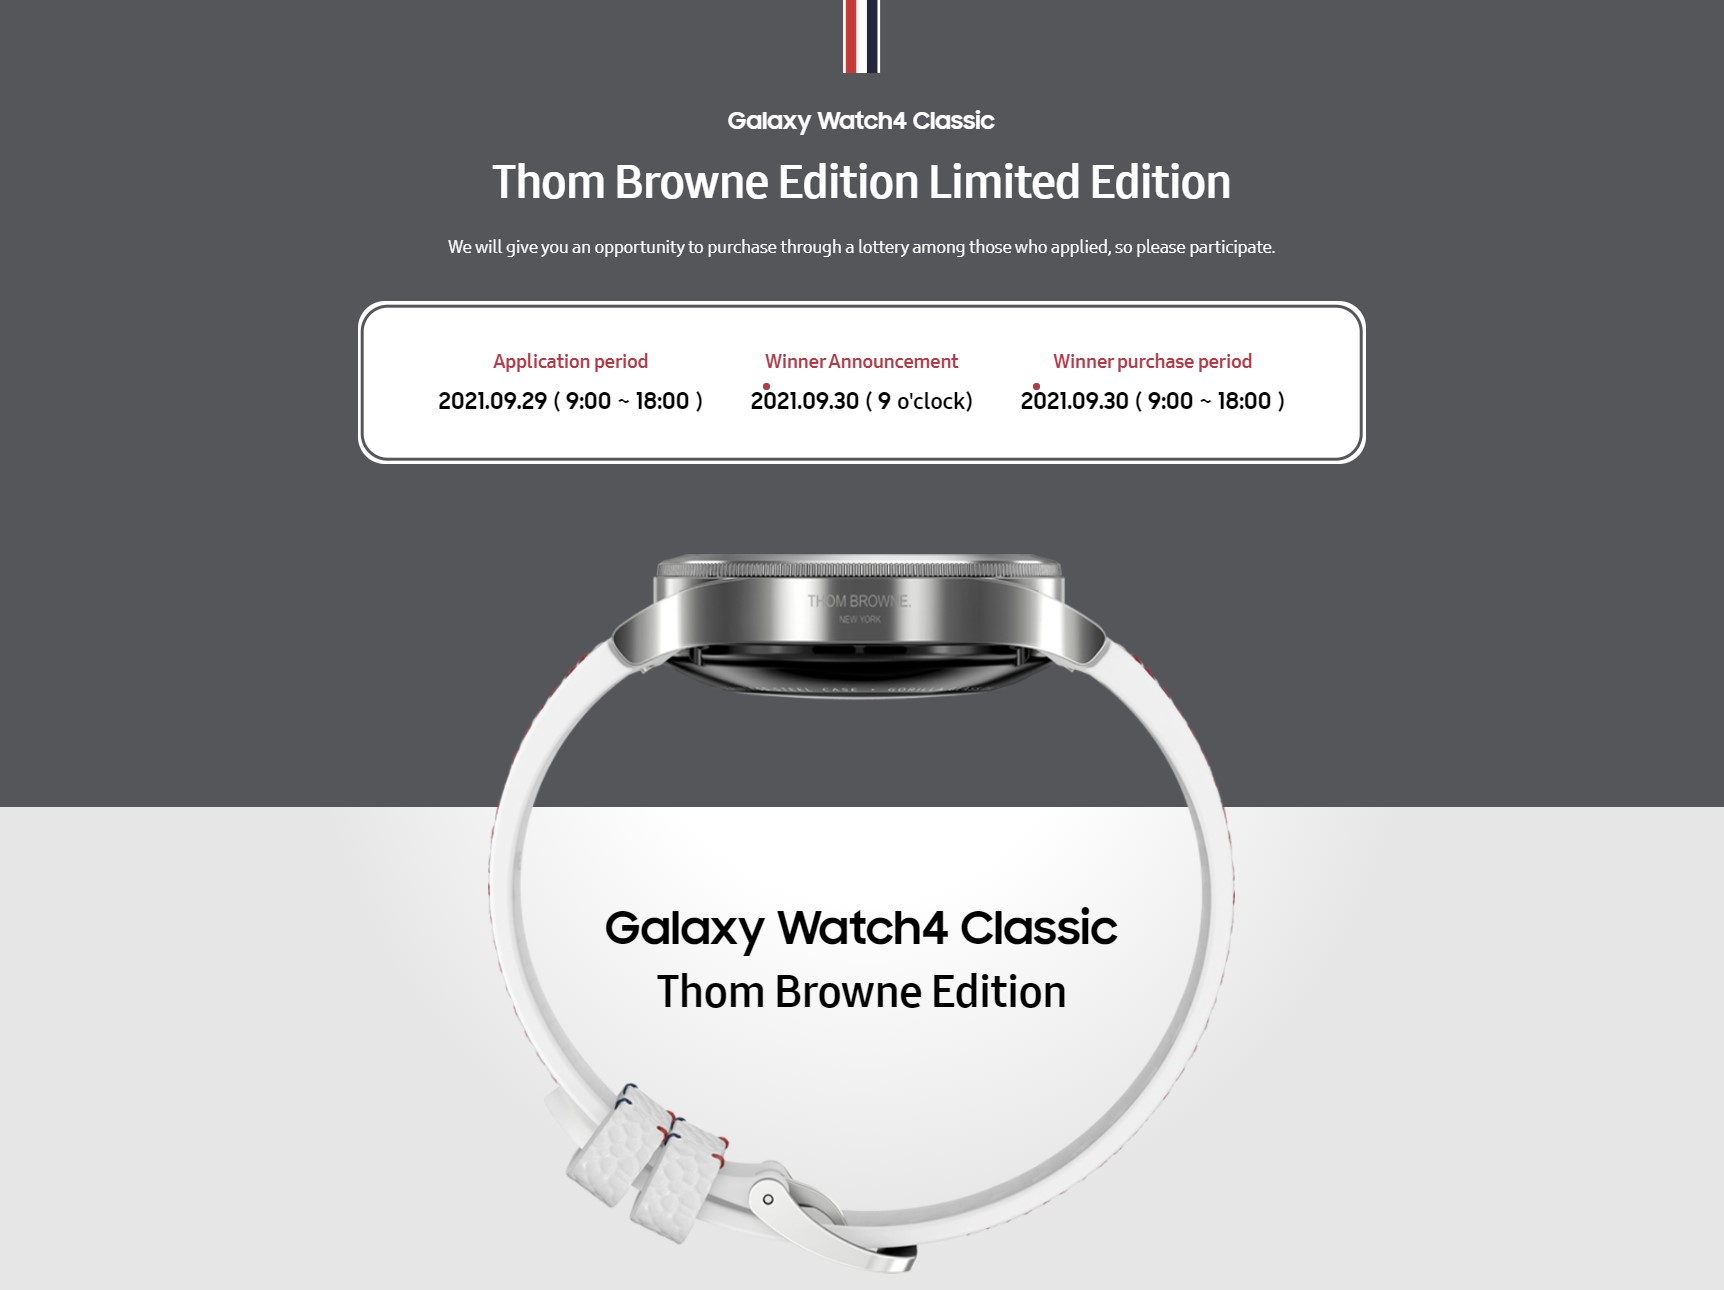 Samsung Galaxy Watch 4 Classic Thom Browne Limited Edition Launch Date South Korea